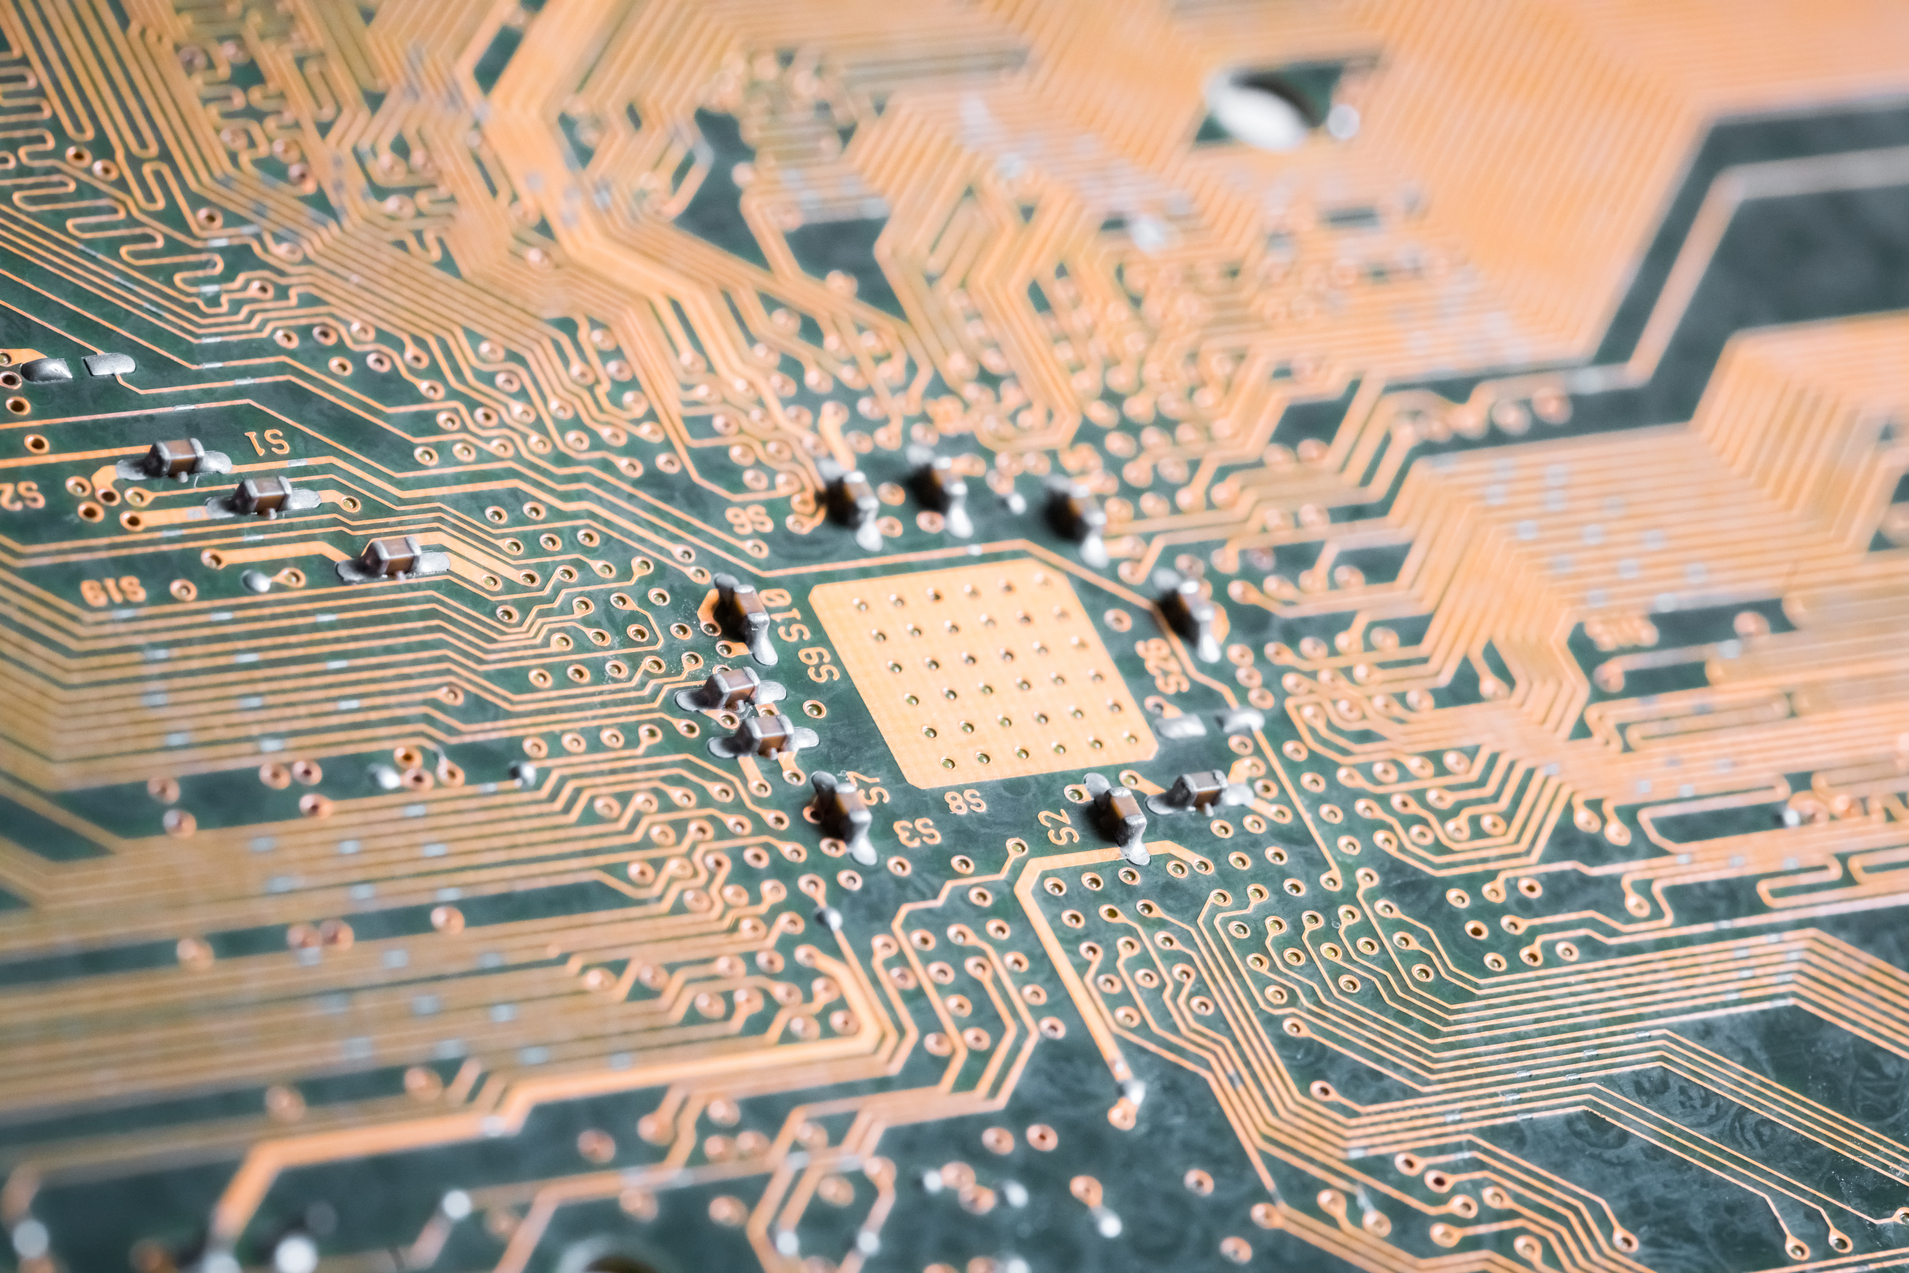 golden electronic circuit board as abstract technology background